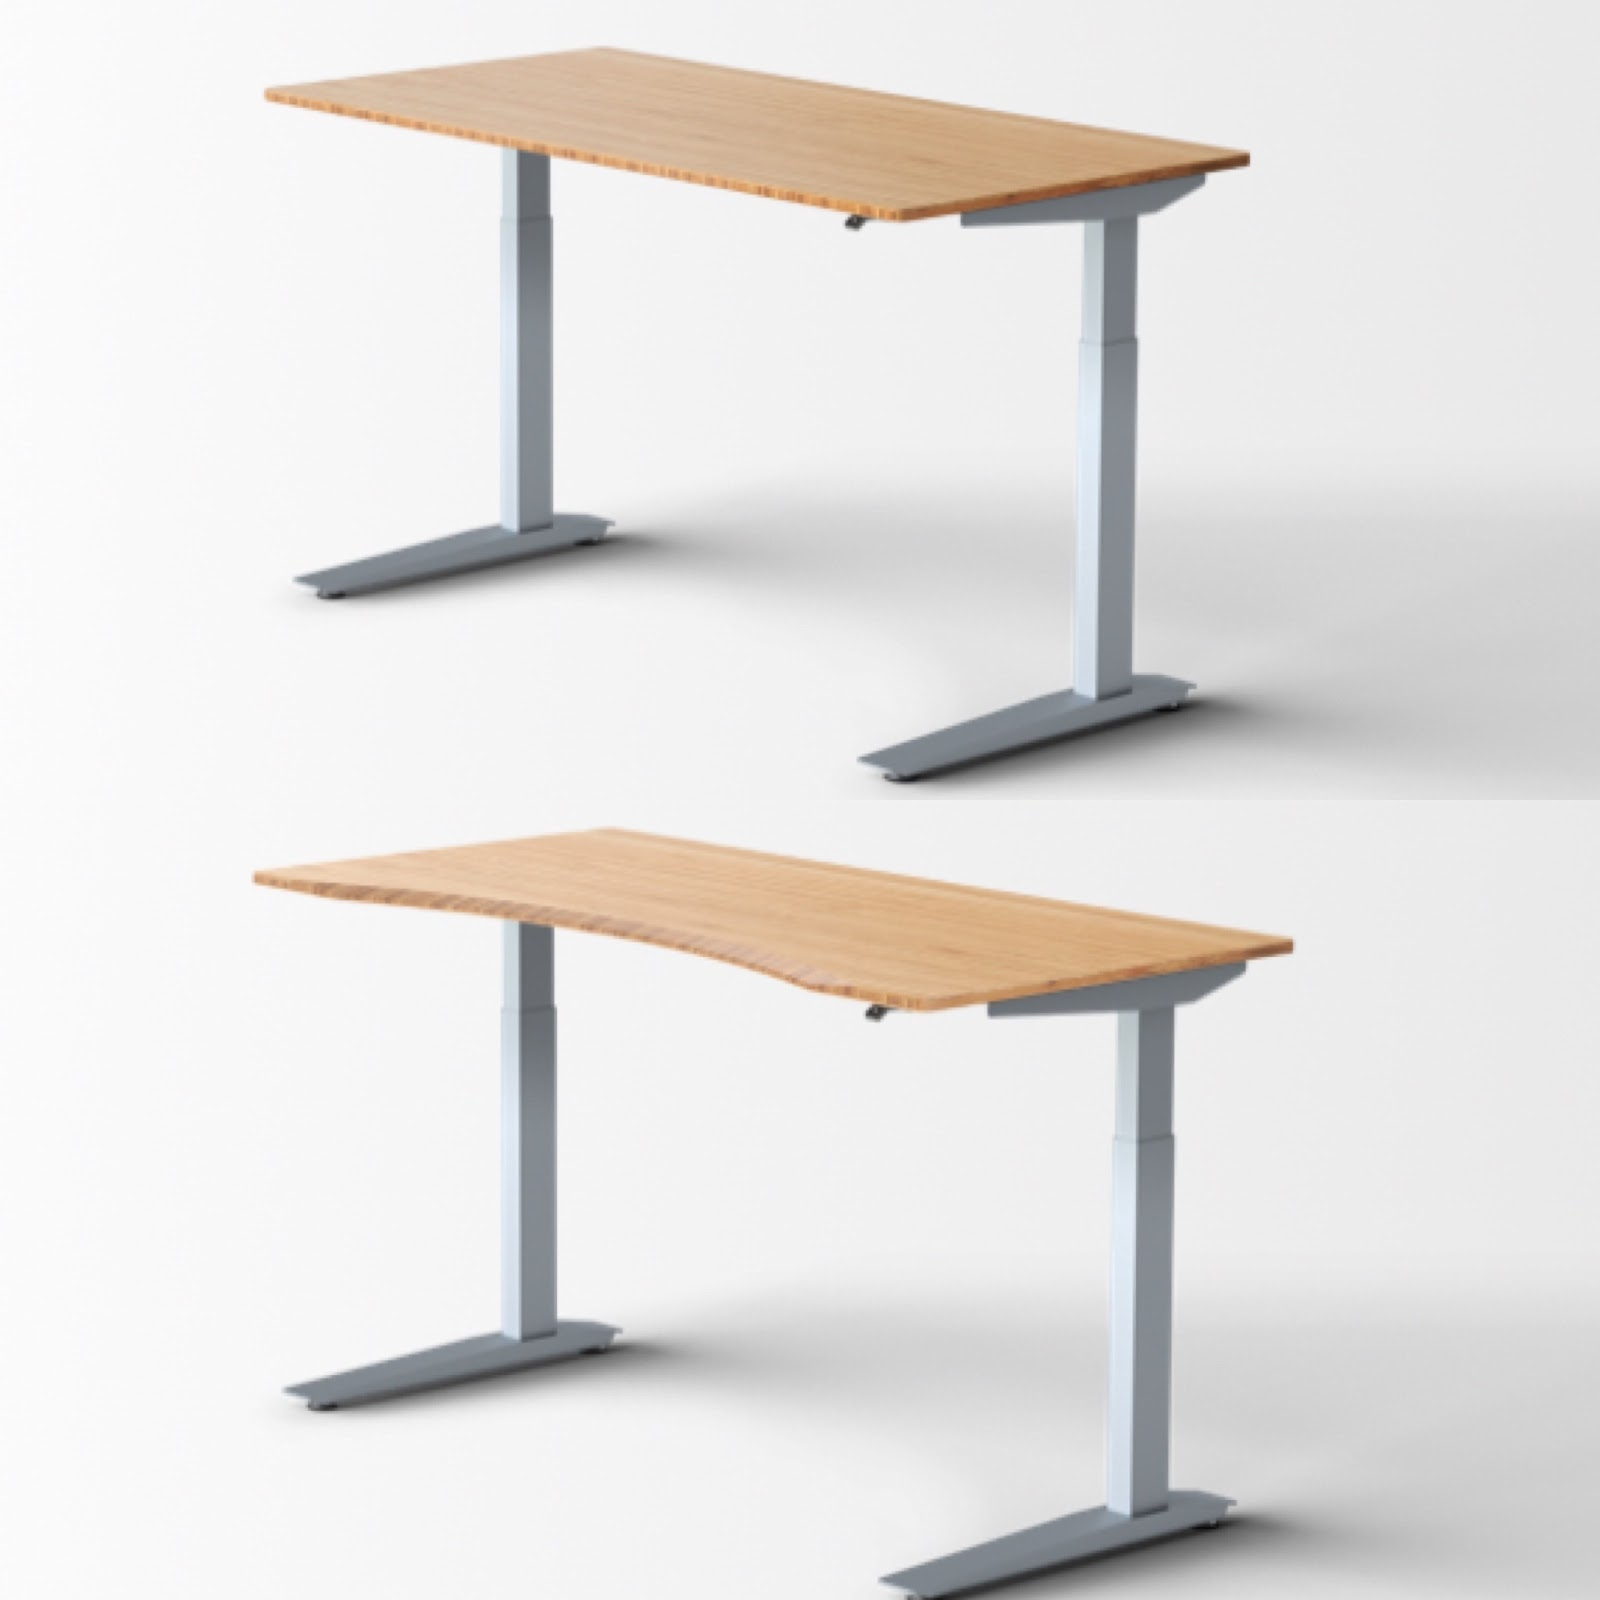 Two types of Jarvis tabletops